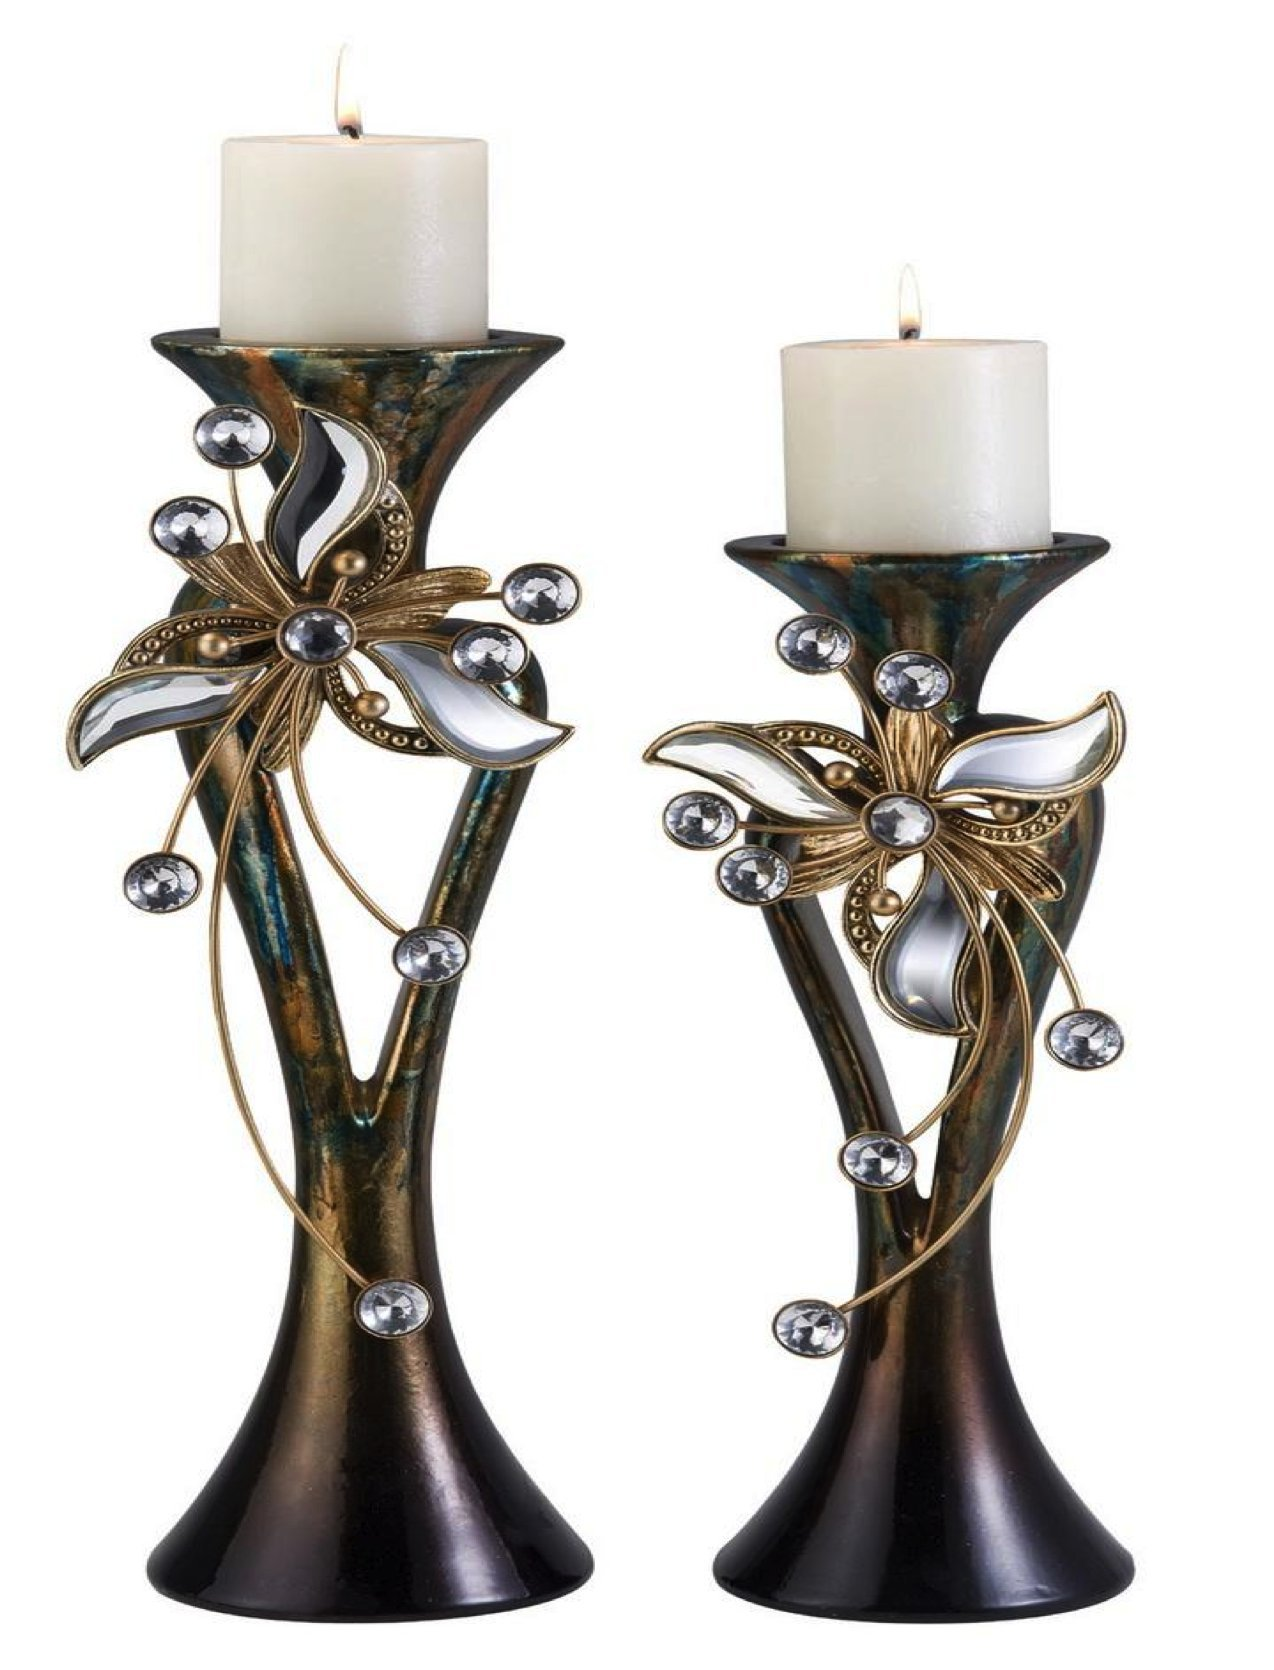 Ore International K-4254C Florria Candleholder Set without Candles, 15 by 18-Inch by ORE